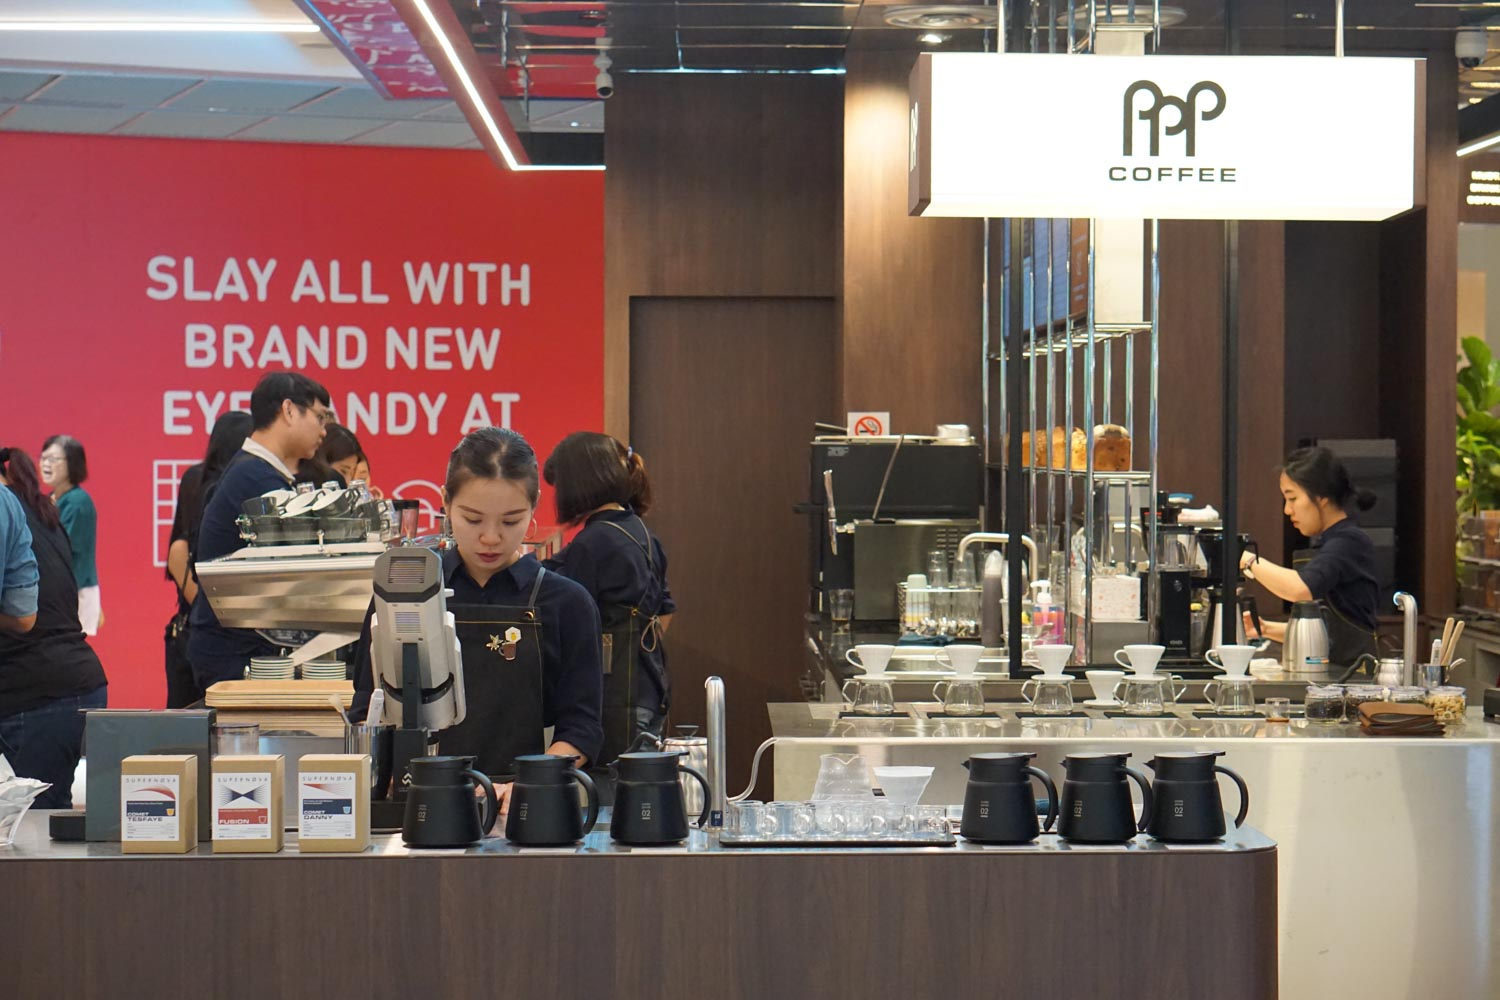 PPP Coffee - Ambience